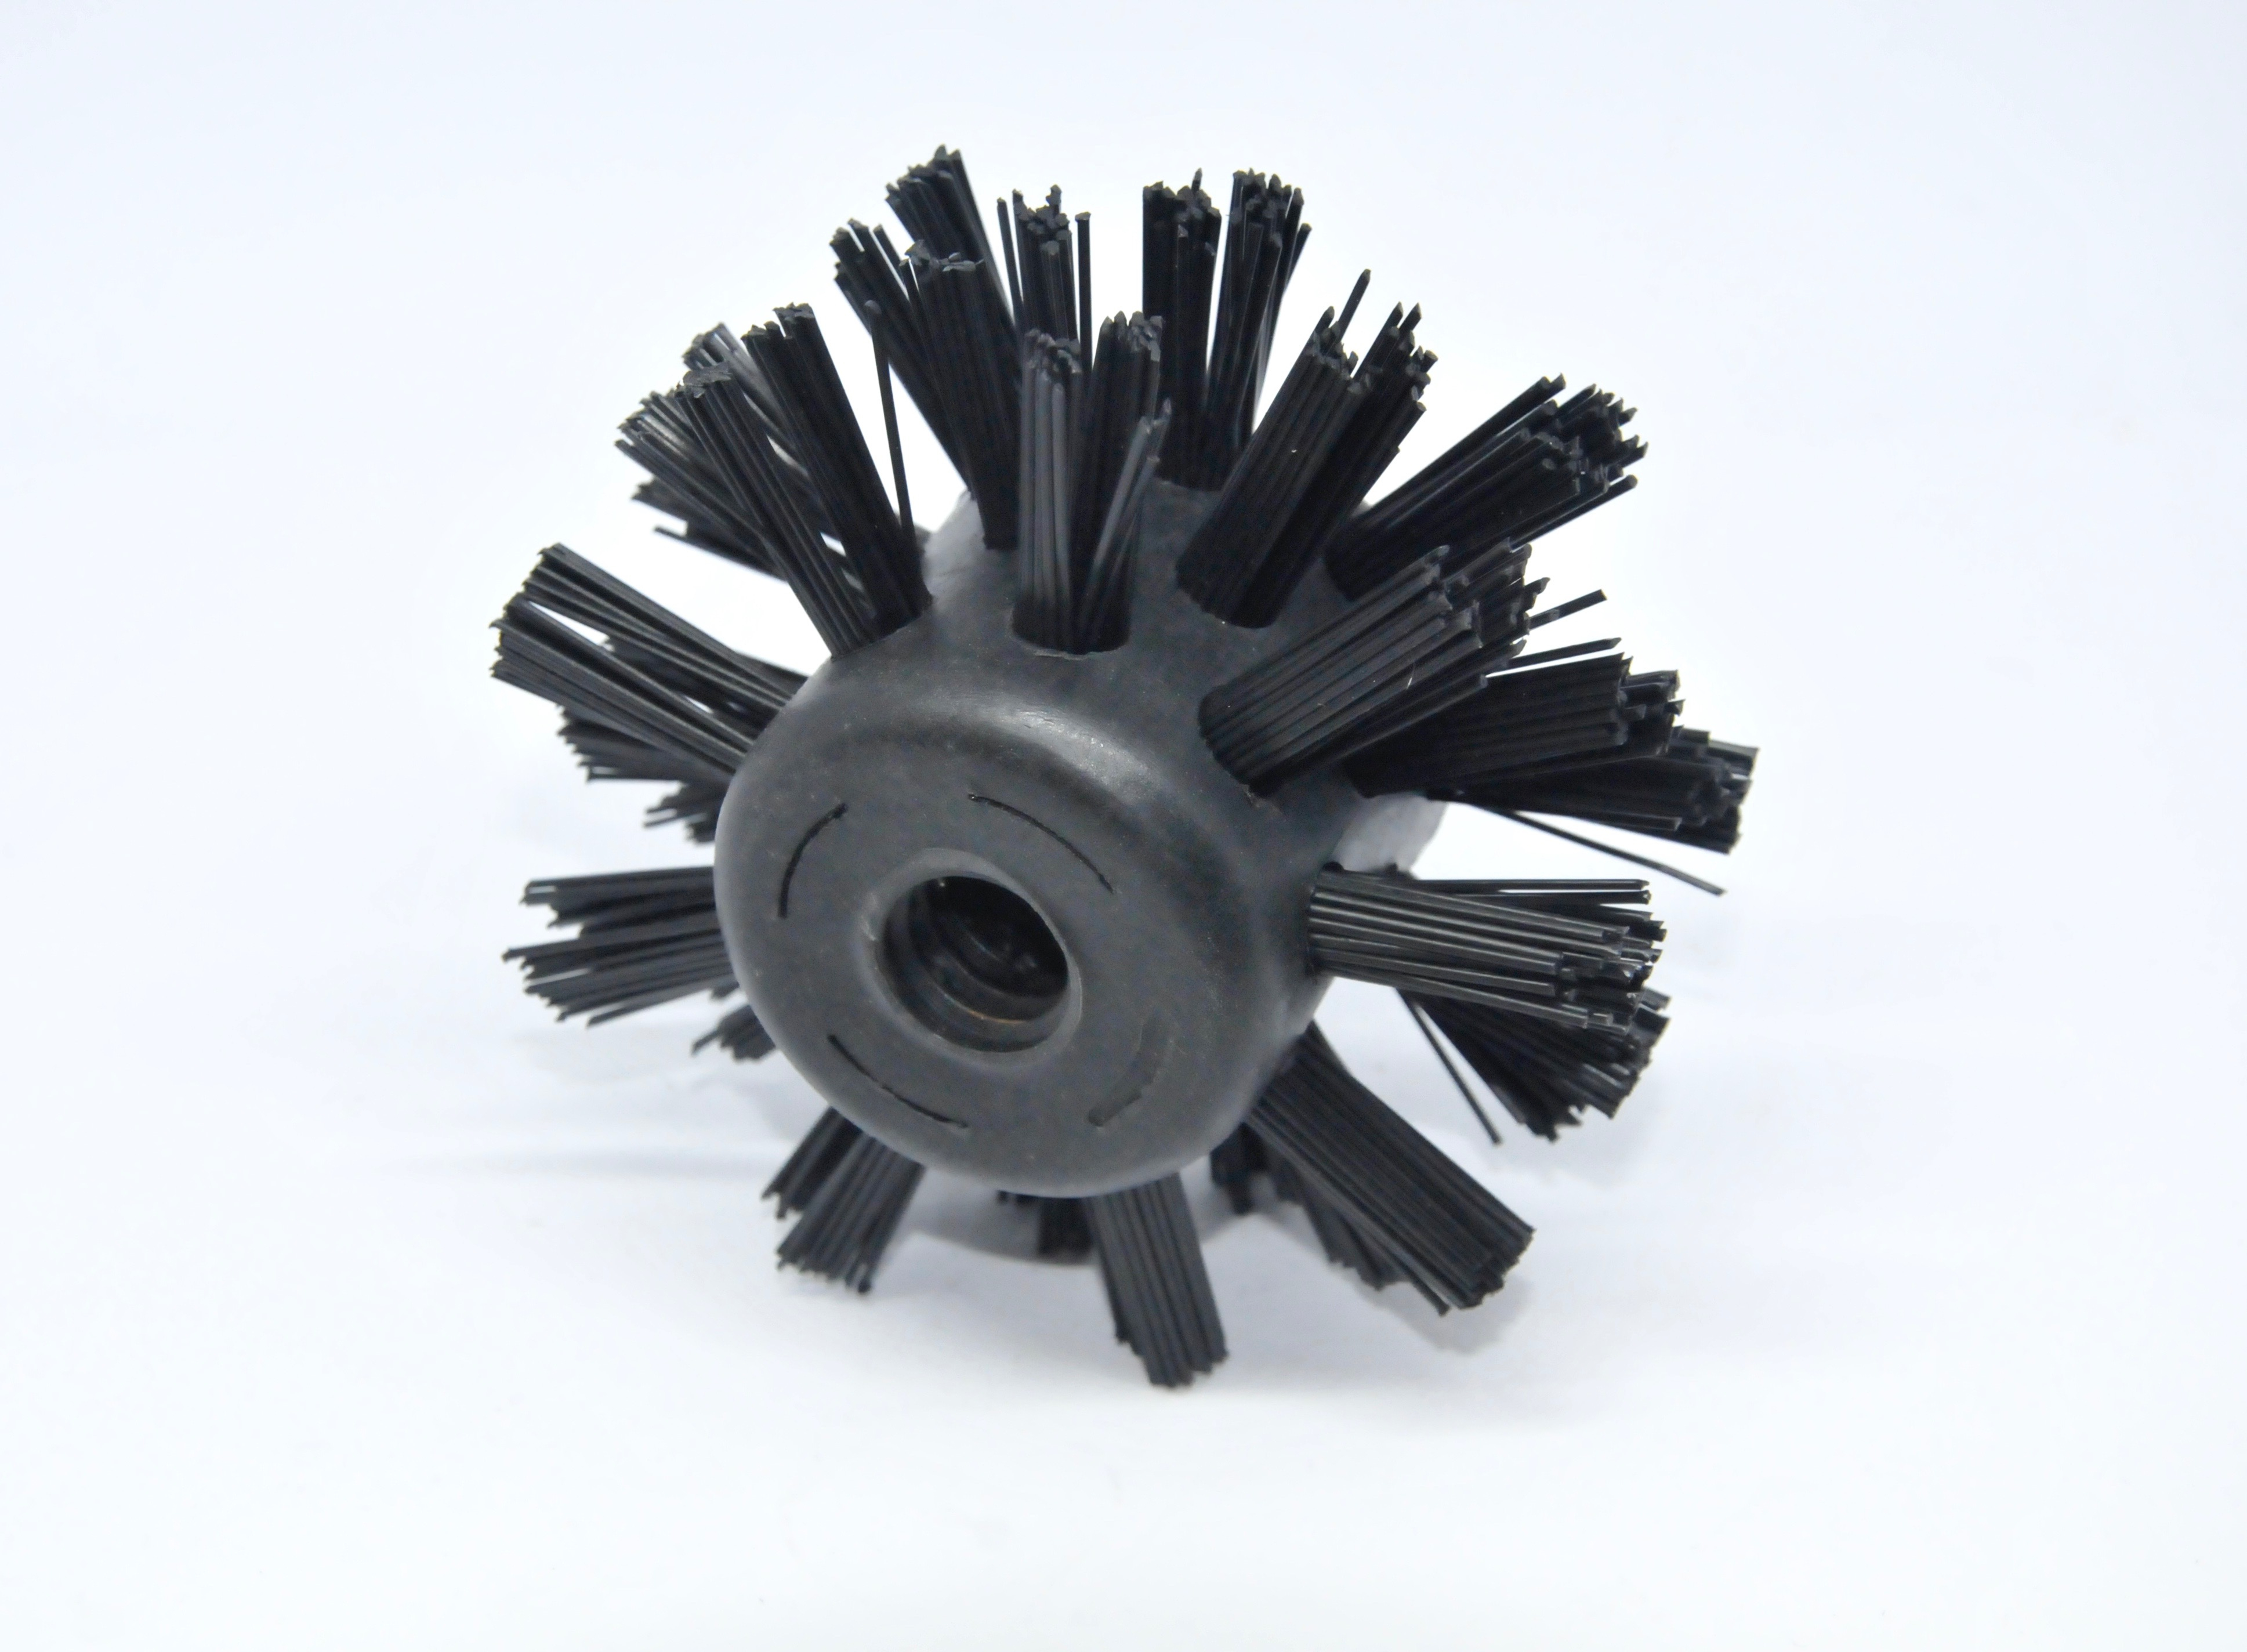 Universal 4 inch Drain Brush for Drain rods